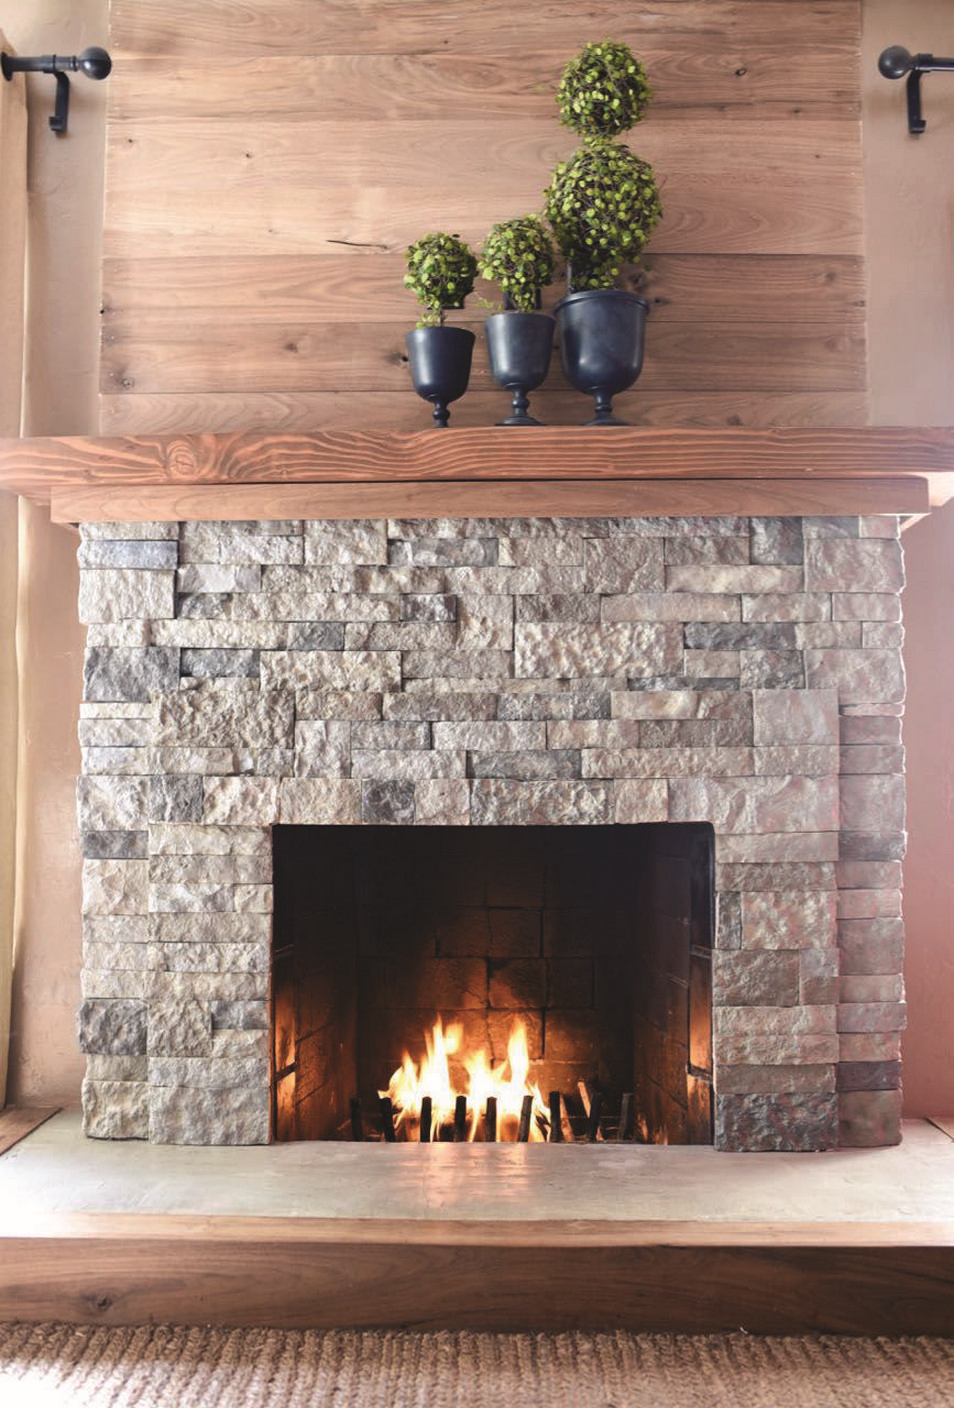 76 Stone Fireplaces The Hearth Is The Heart of The Home 35